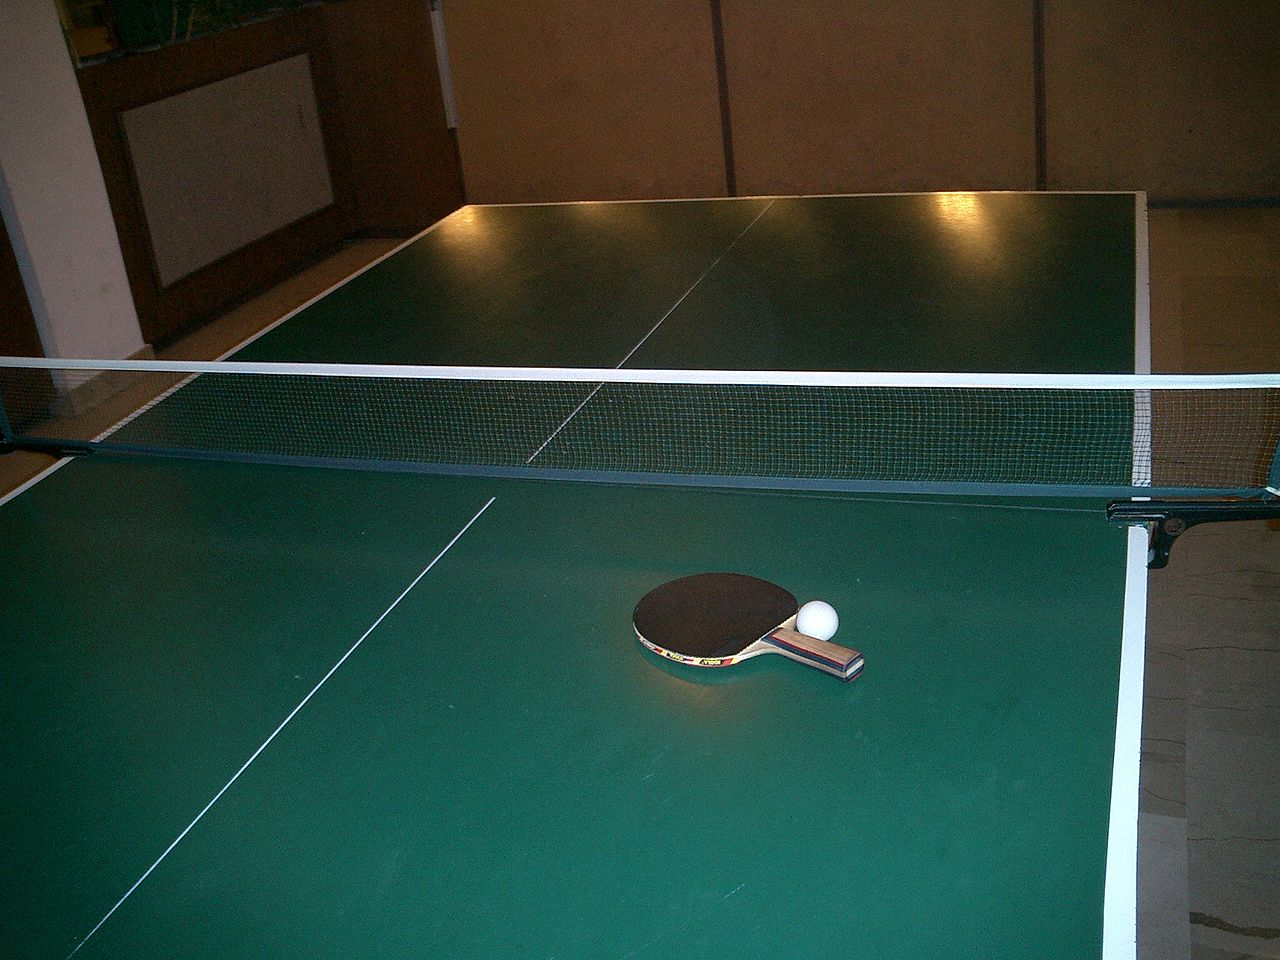 tenis stołowy ping pong - West Brom 4ever - CC:Wikimedia Commons